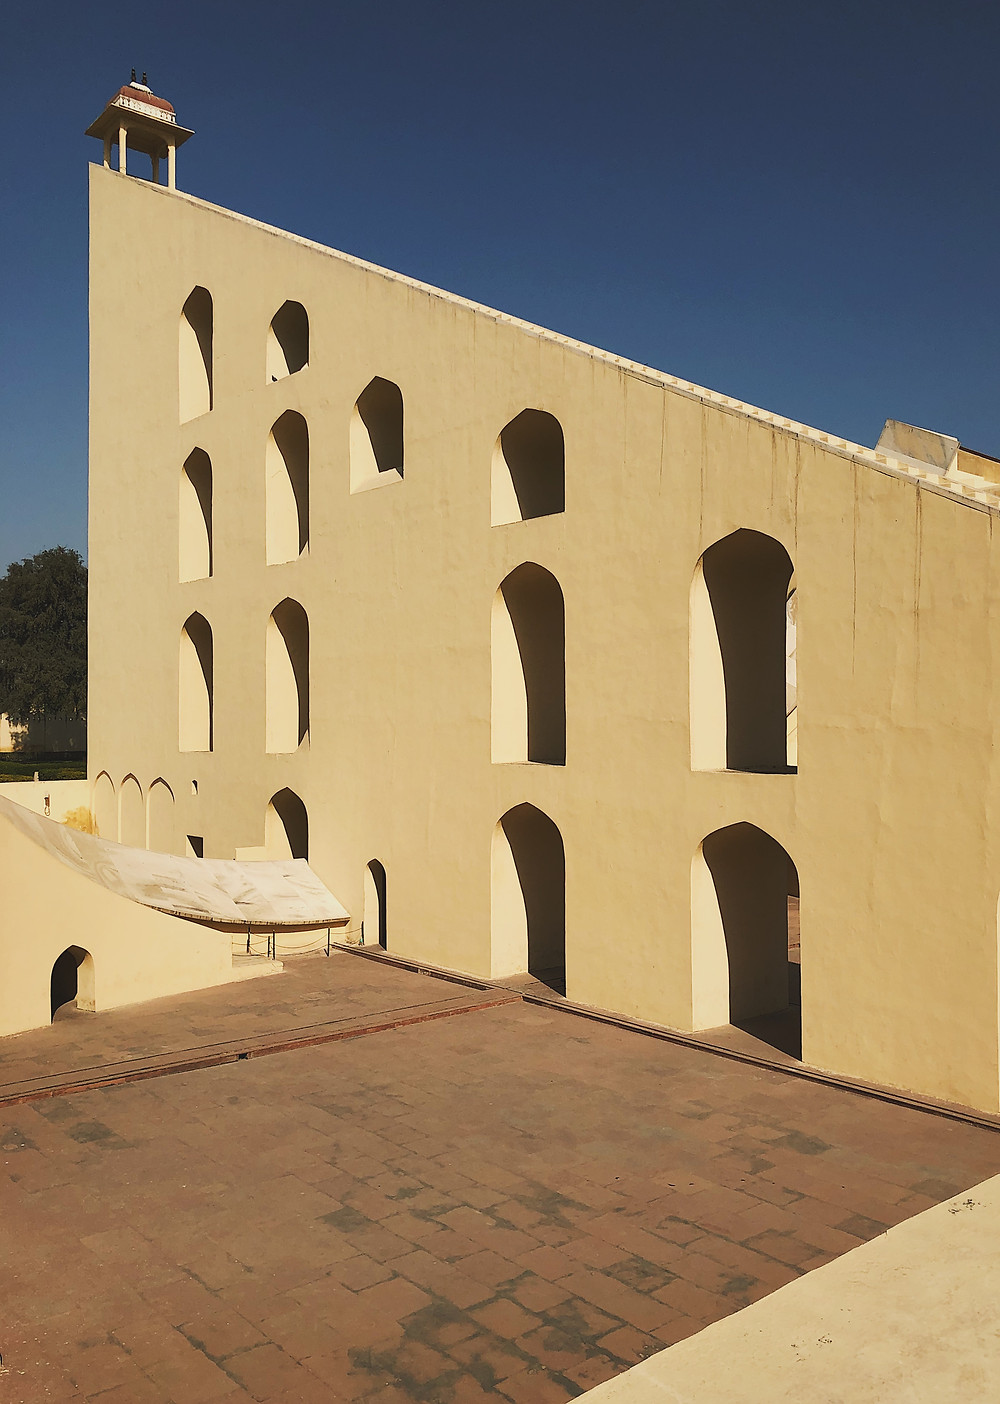 Jantan Mantar, astronomy heaven in Jaipur, Rajasthan, India